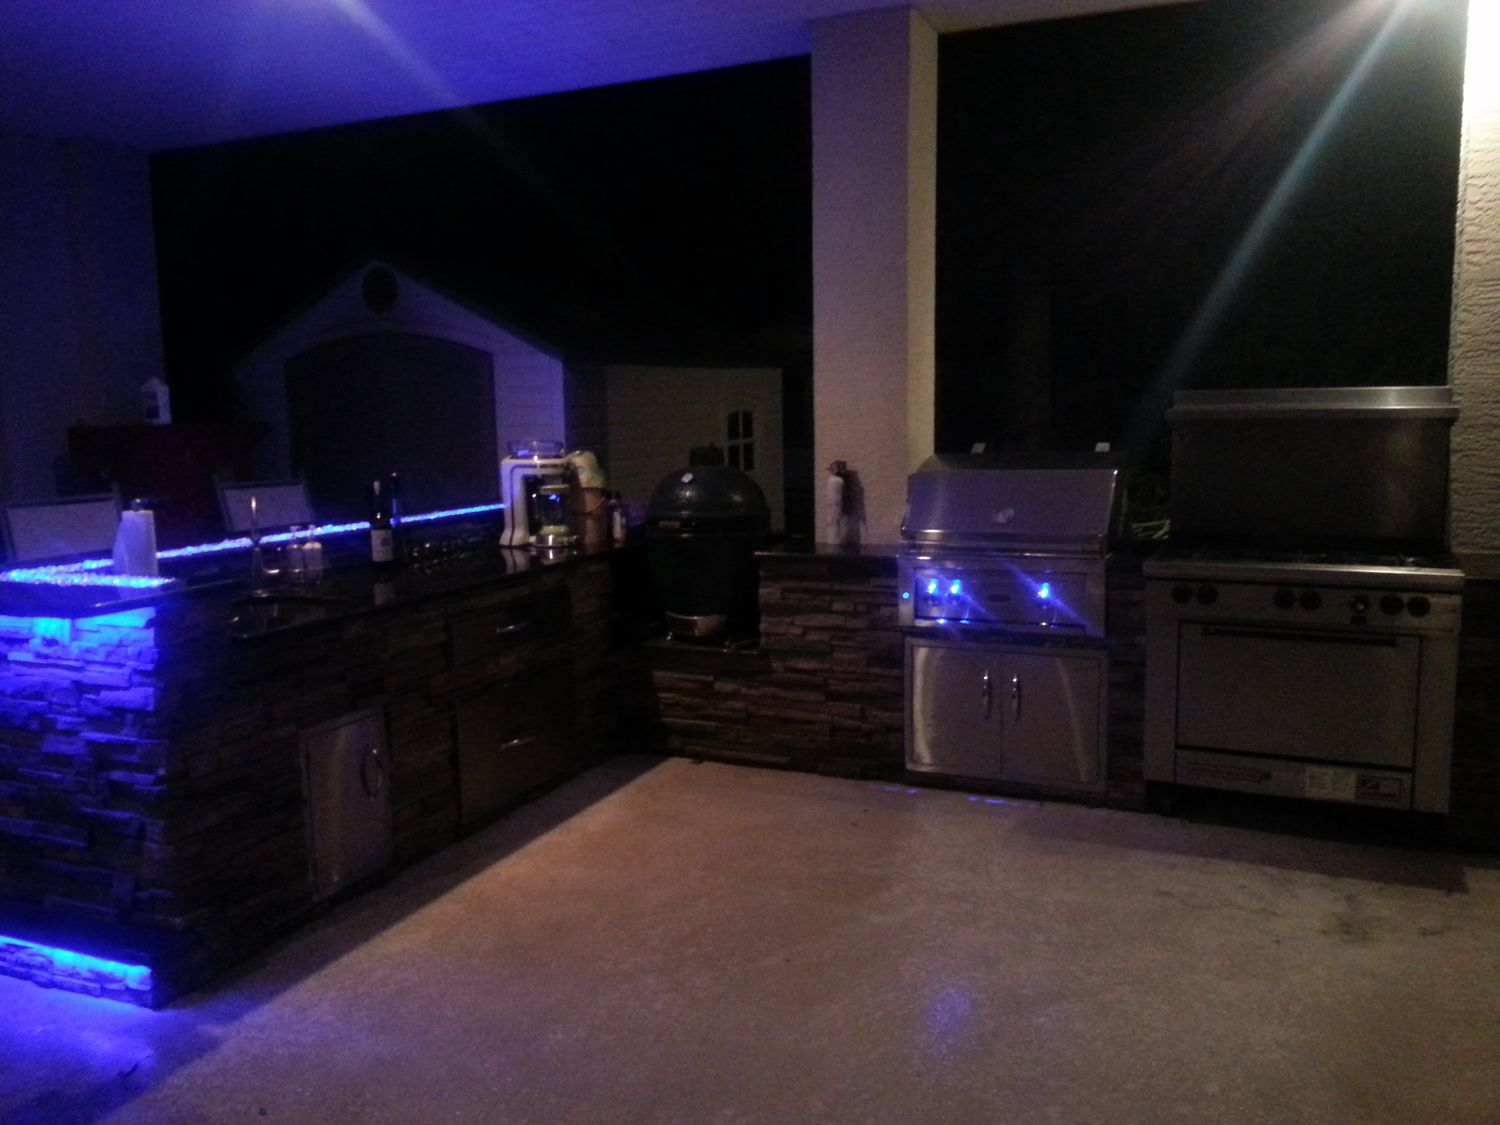 Outdoor Kitchens With Led Lighting 36 Photos Outdoor Living Design Outdoor Kitchen Led Outdoor Lighting